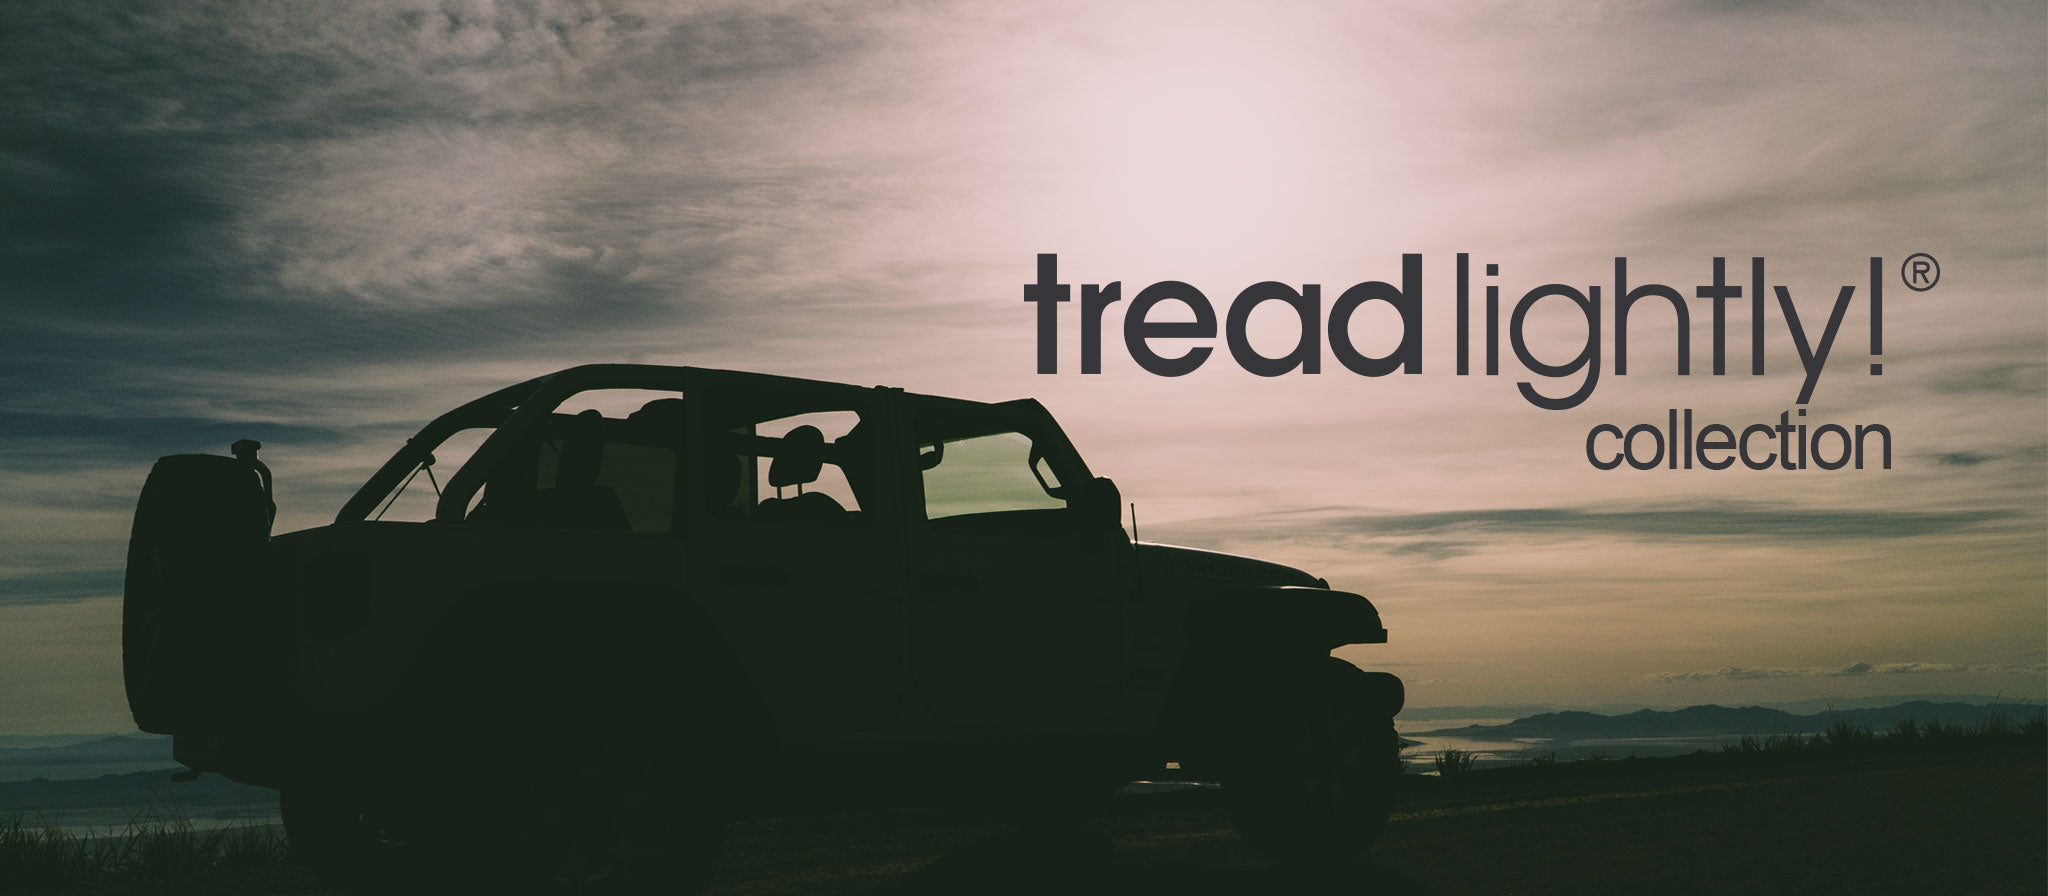 Tread Lightly! New T-shirt Collection by OGC Off Road